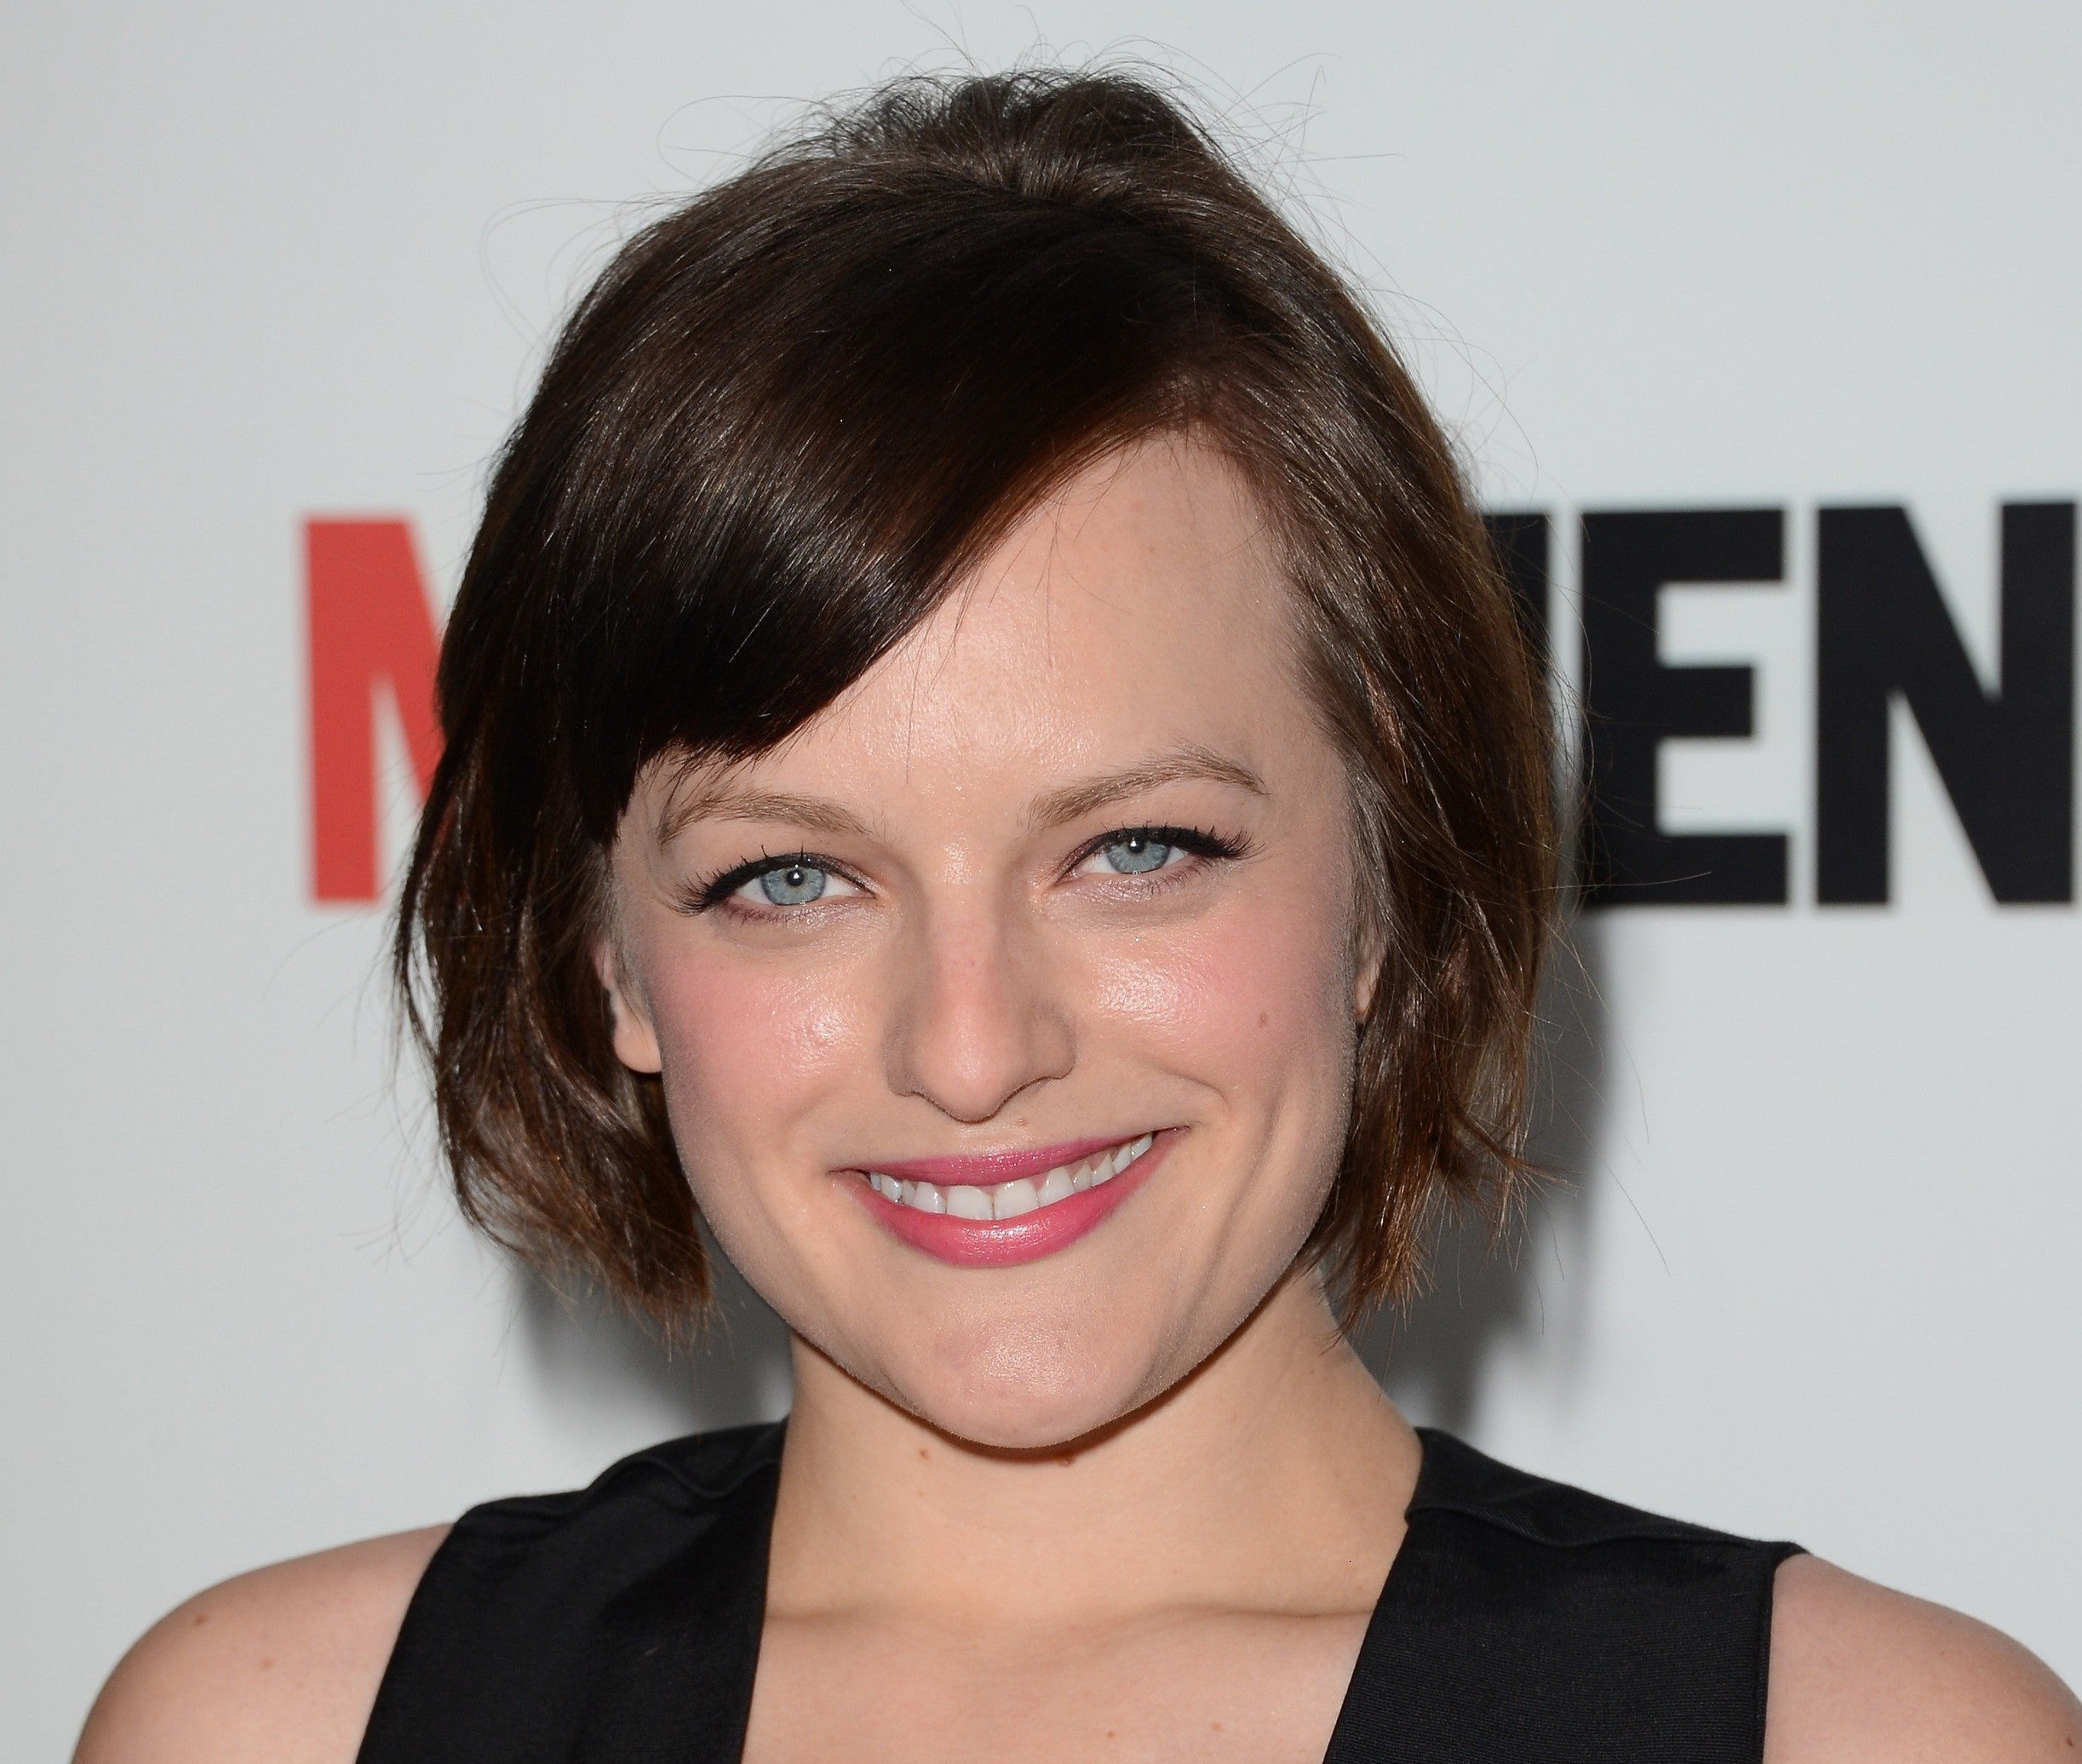 Elisabeth Moss Full hd wallpapersElisabeth Moss Full hd wallpapers